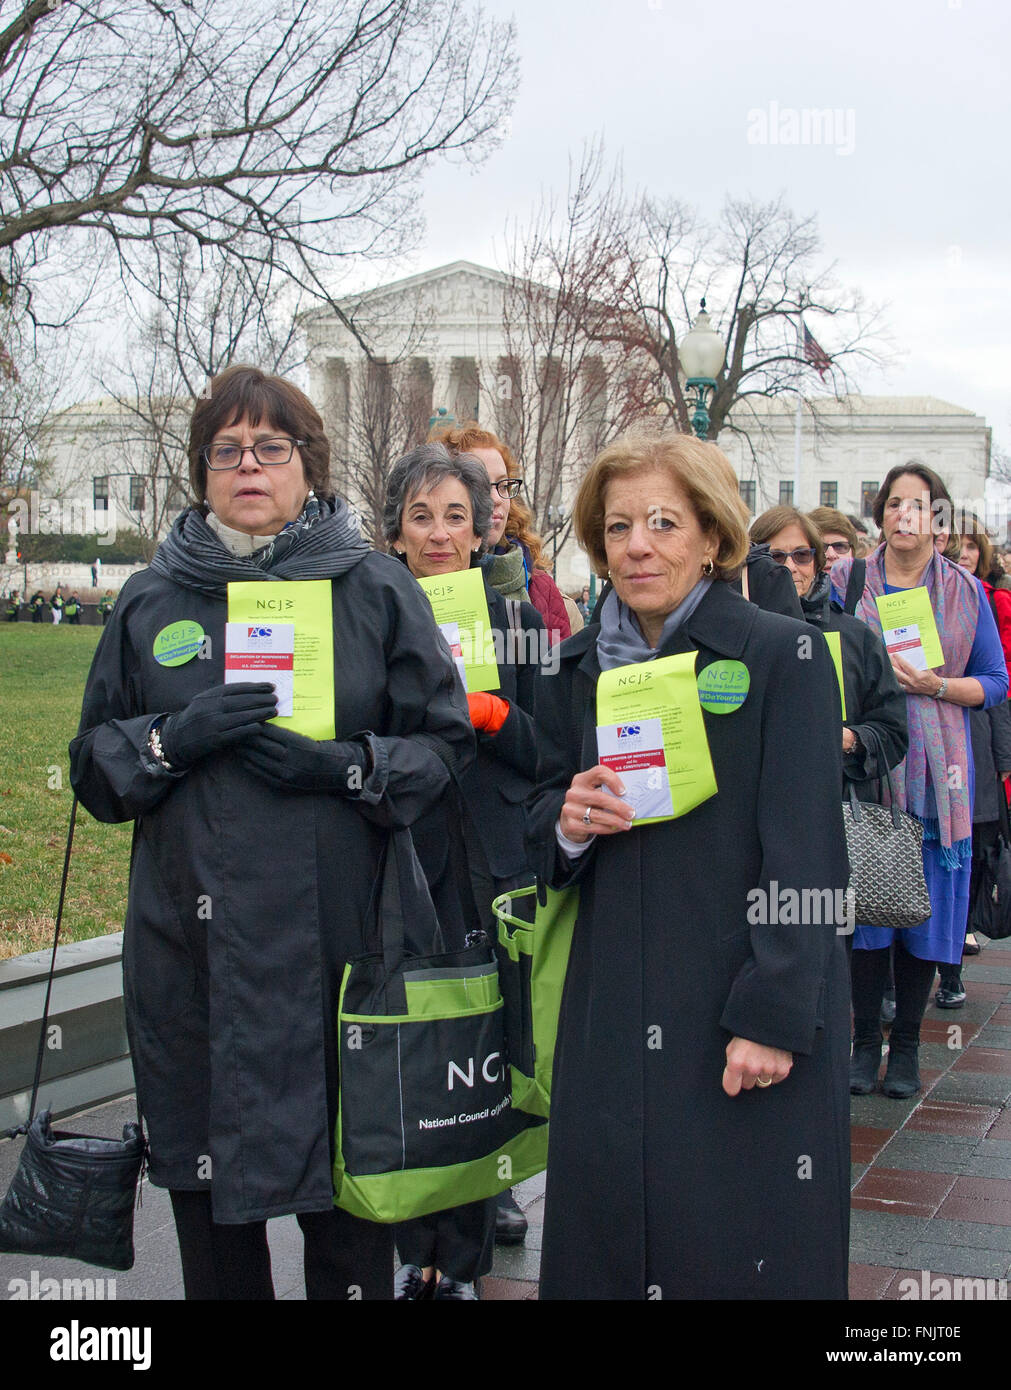 National Council of Jewish Women (NCJW) CEO Nancy Kaufman (left) and National President Debbie Hoffmann (right) - Stock Image